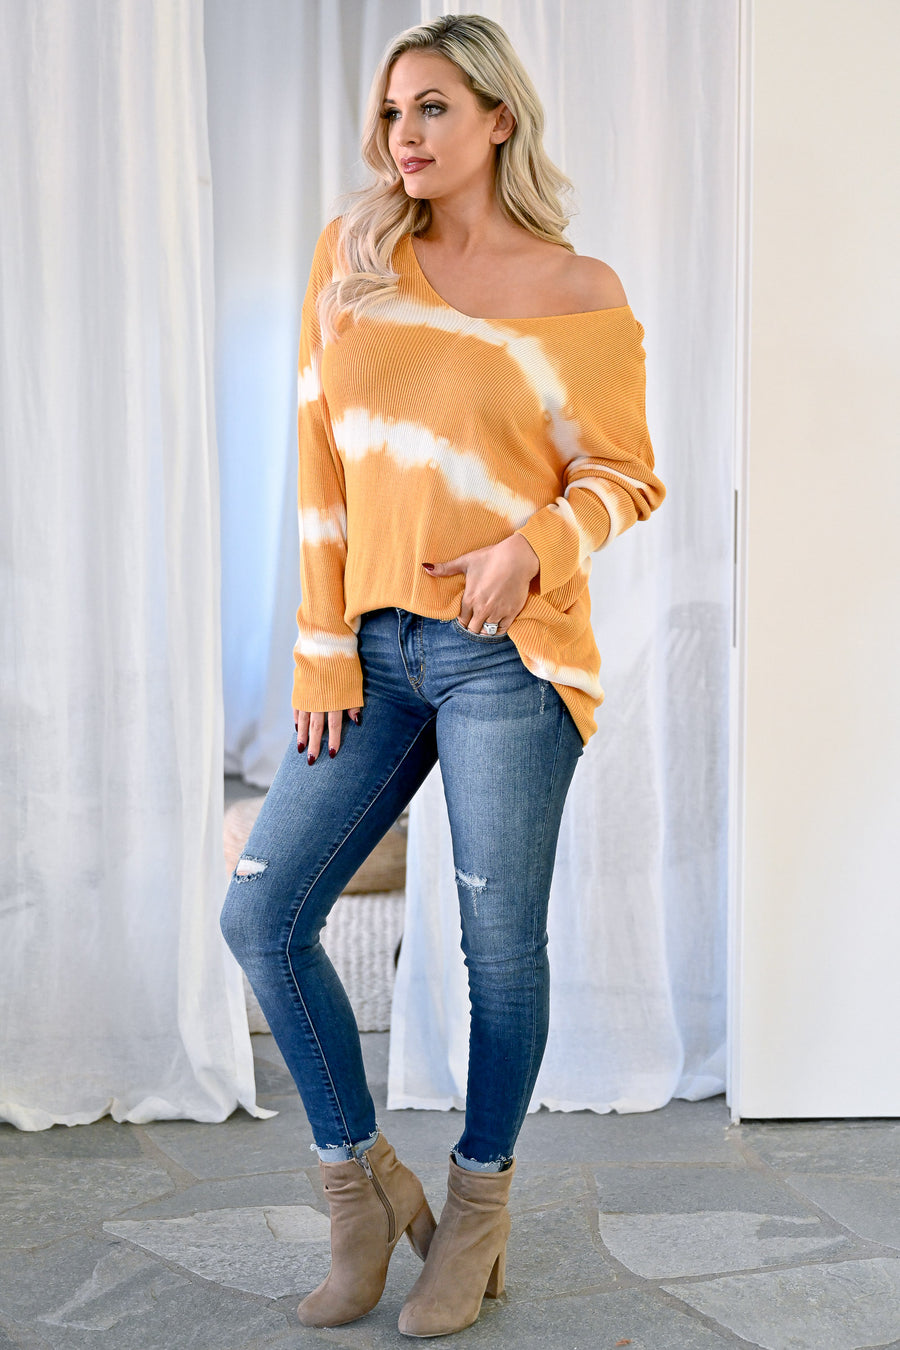 Like This Forever Tie Dye Top - Mustard womens casual oversized ribbed knit long sleeve tie dye top closet candy front